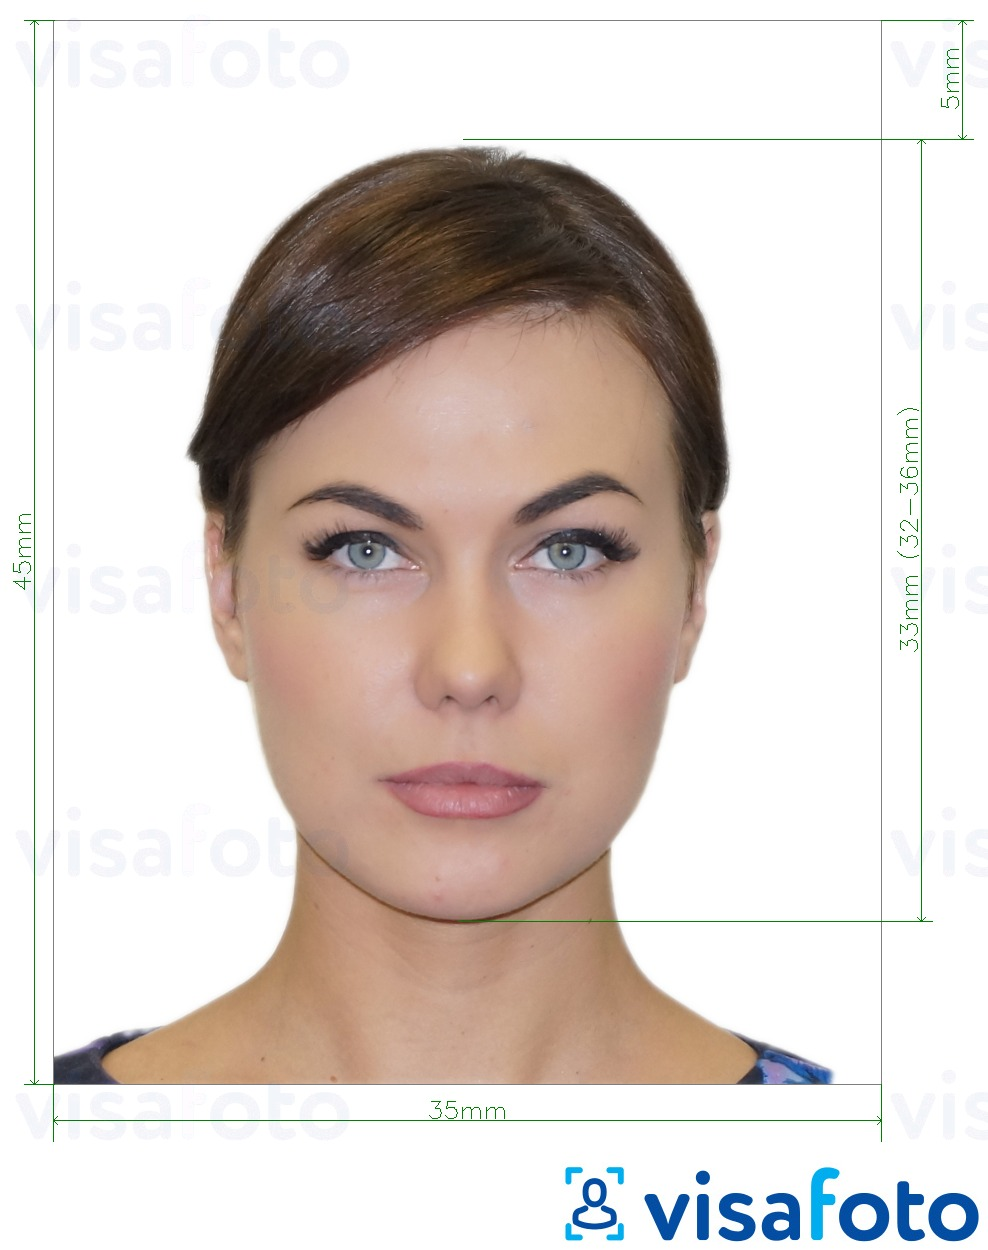 Example of photo for Russia International Passport application with exact size specification